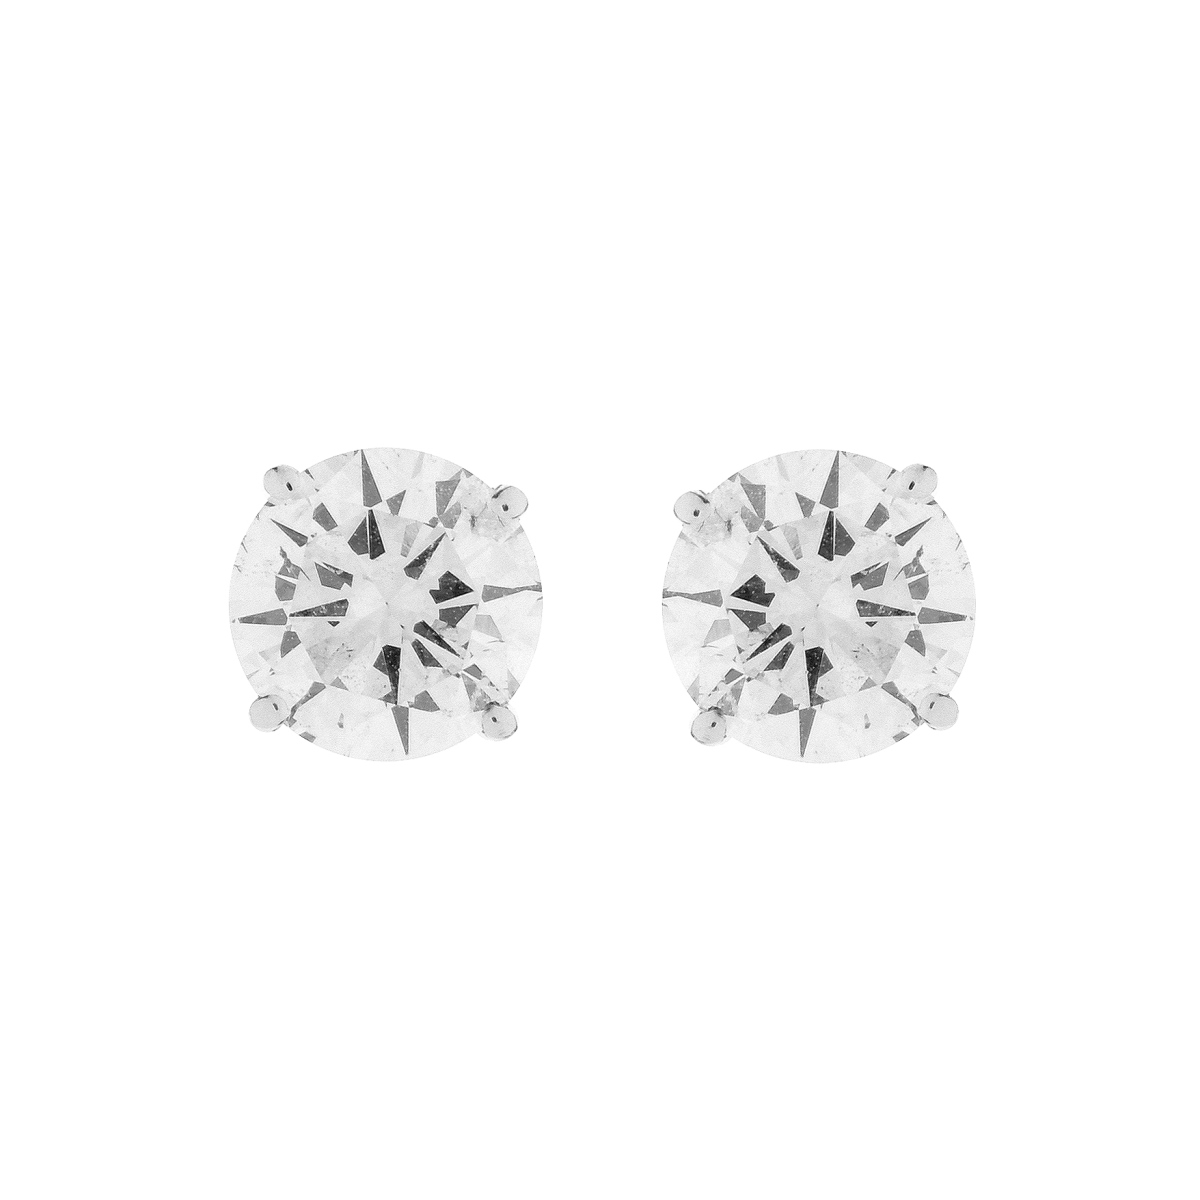 4.0ct TW Diamond and 14K Stud Earrings